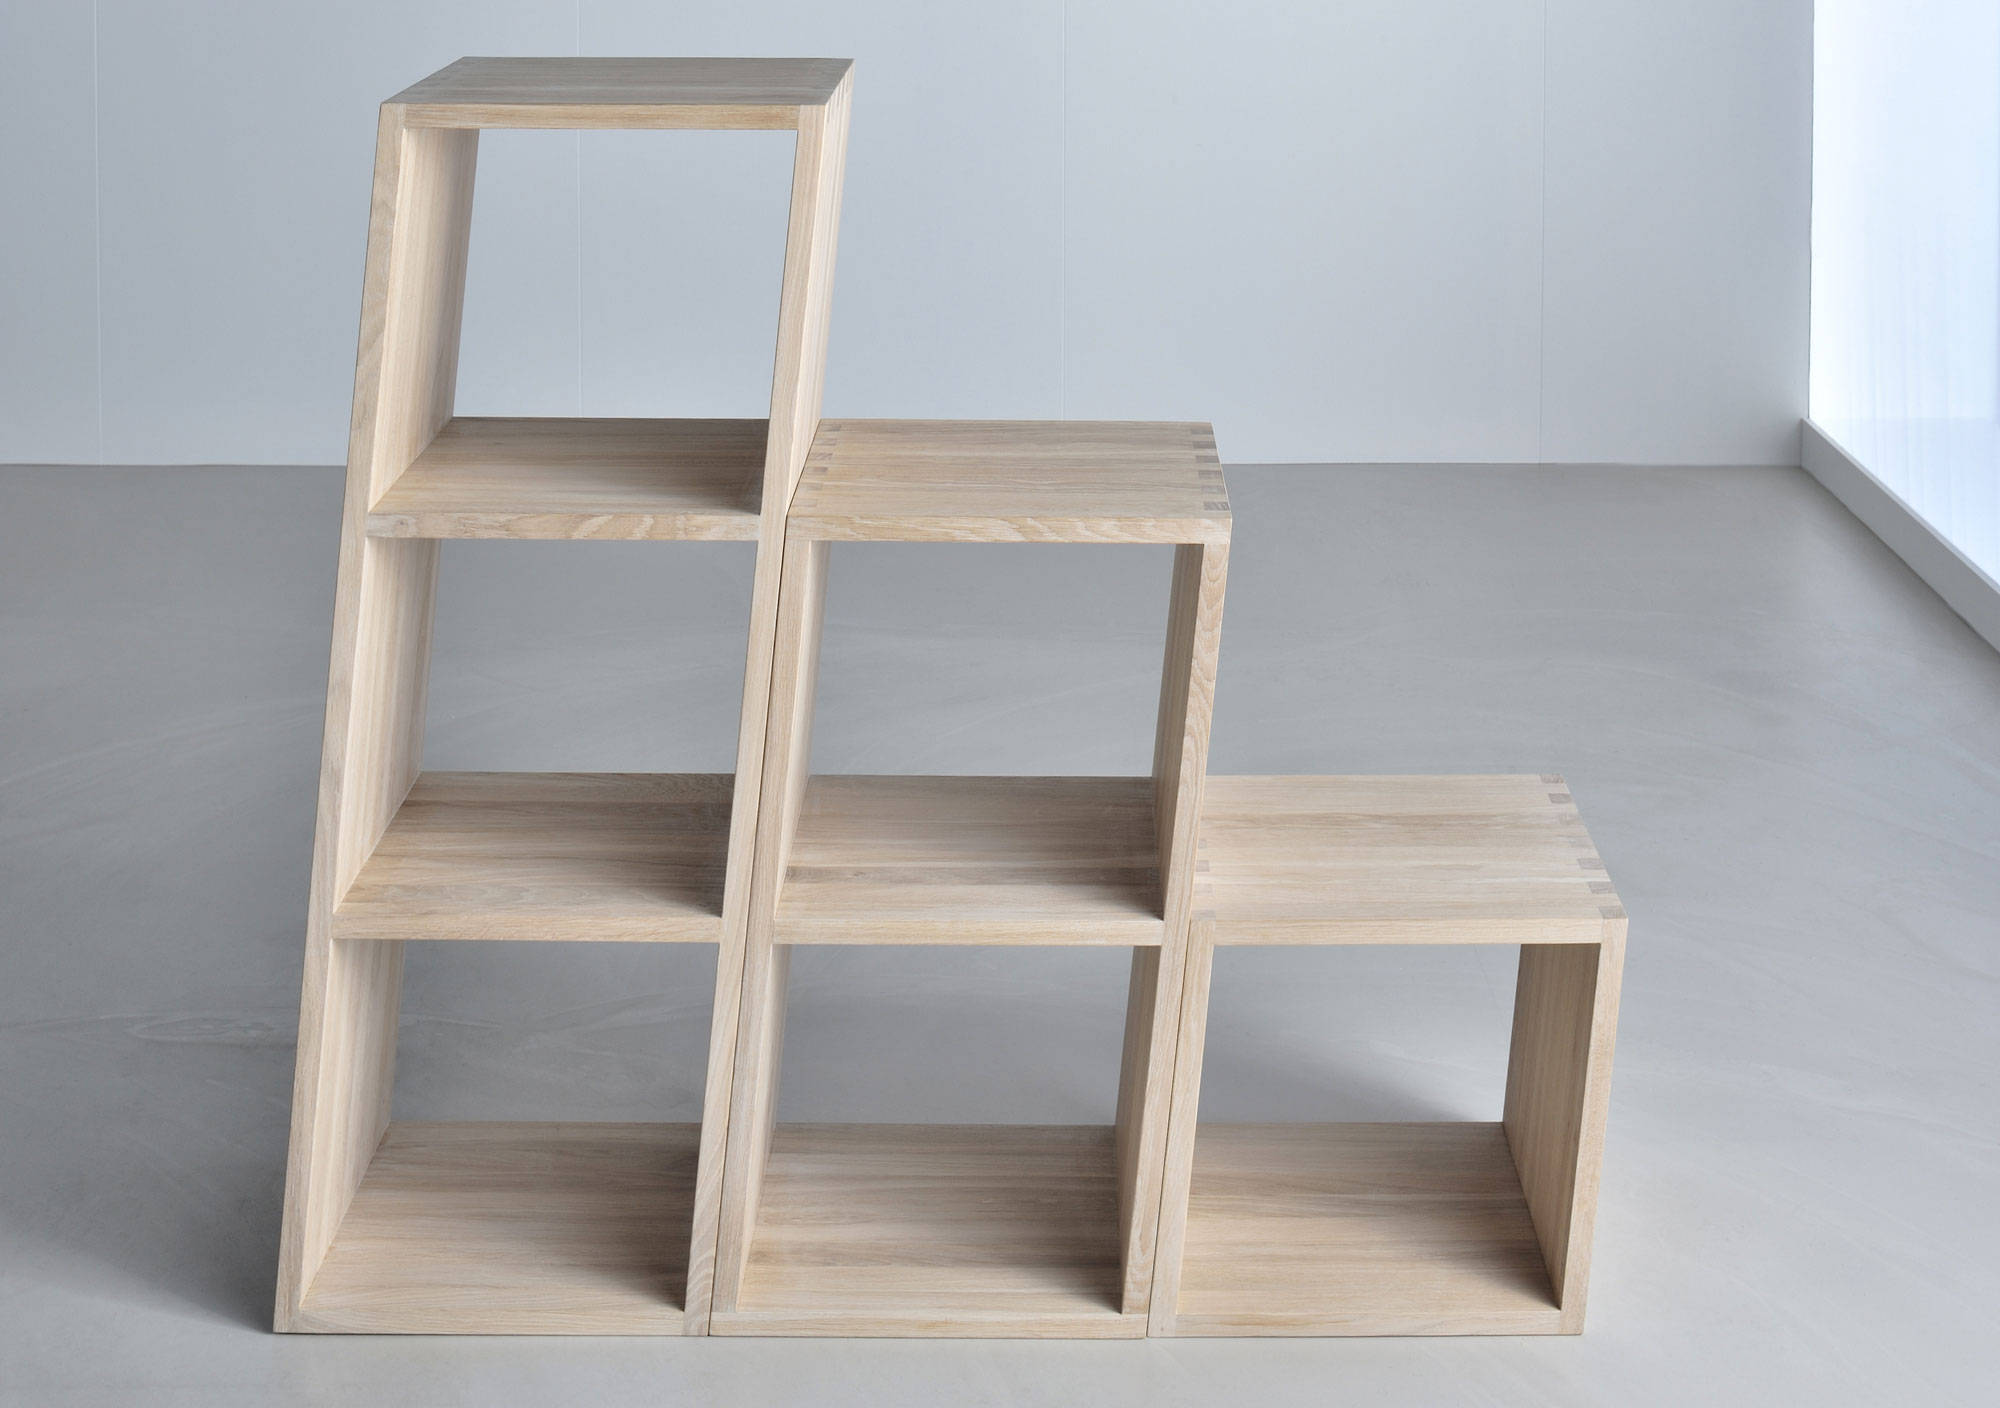 Wooden Designer Shelf PISA 3346 custom made in solid wood by vitamin design